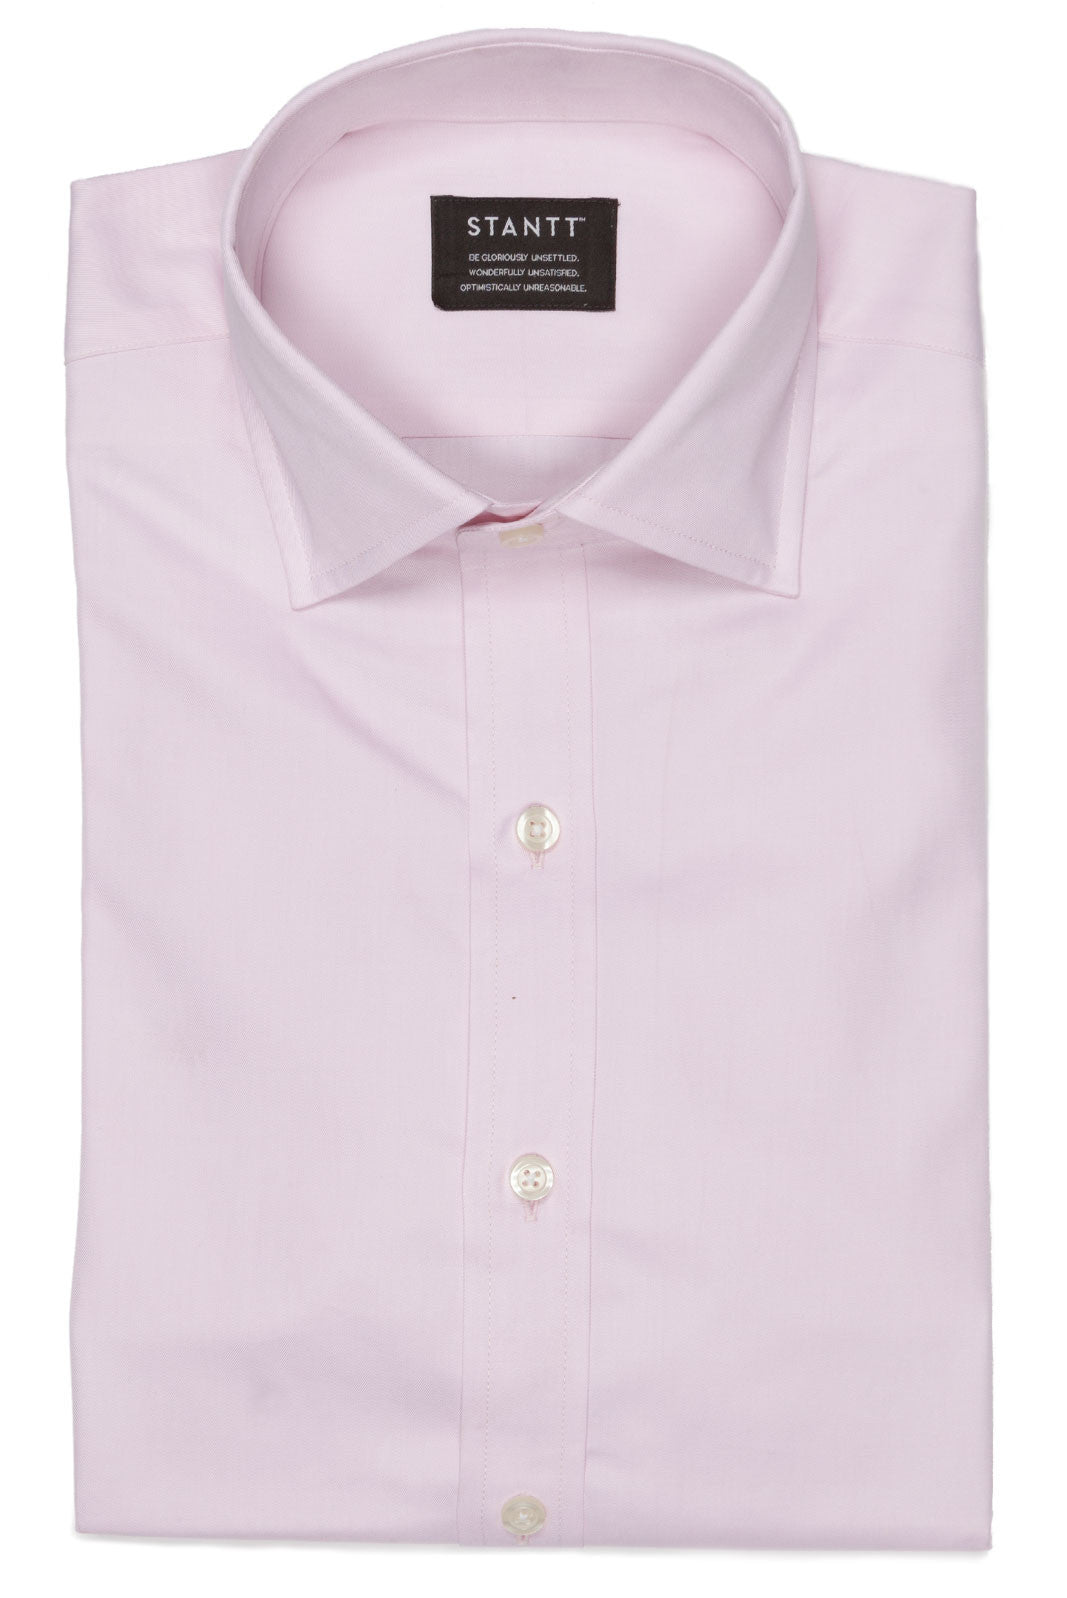 Light Pink: Cutaway Collar, Barrel Cuff